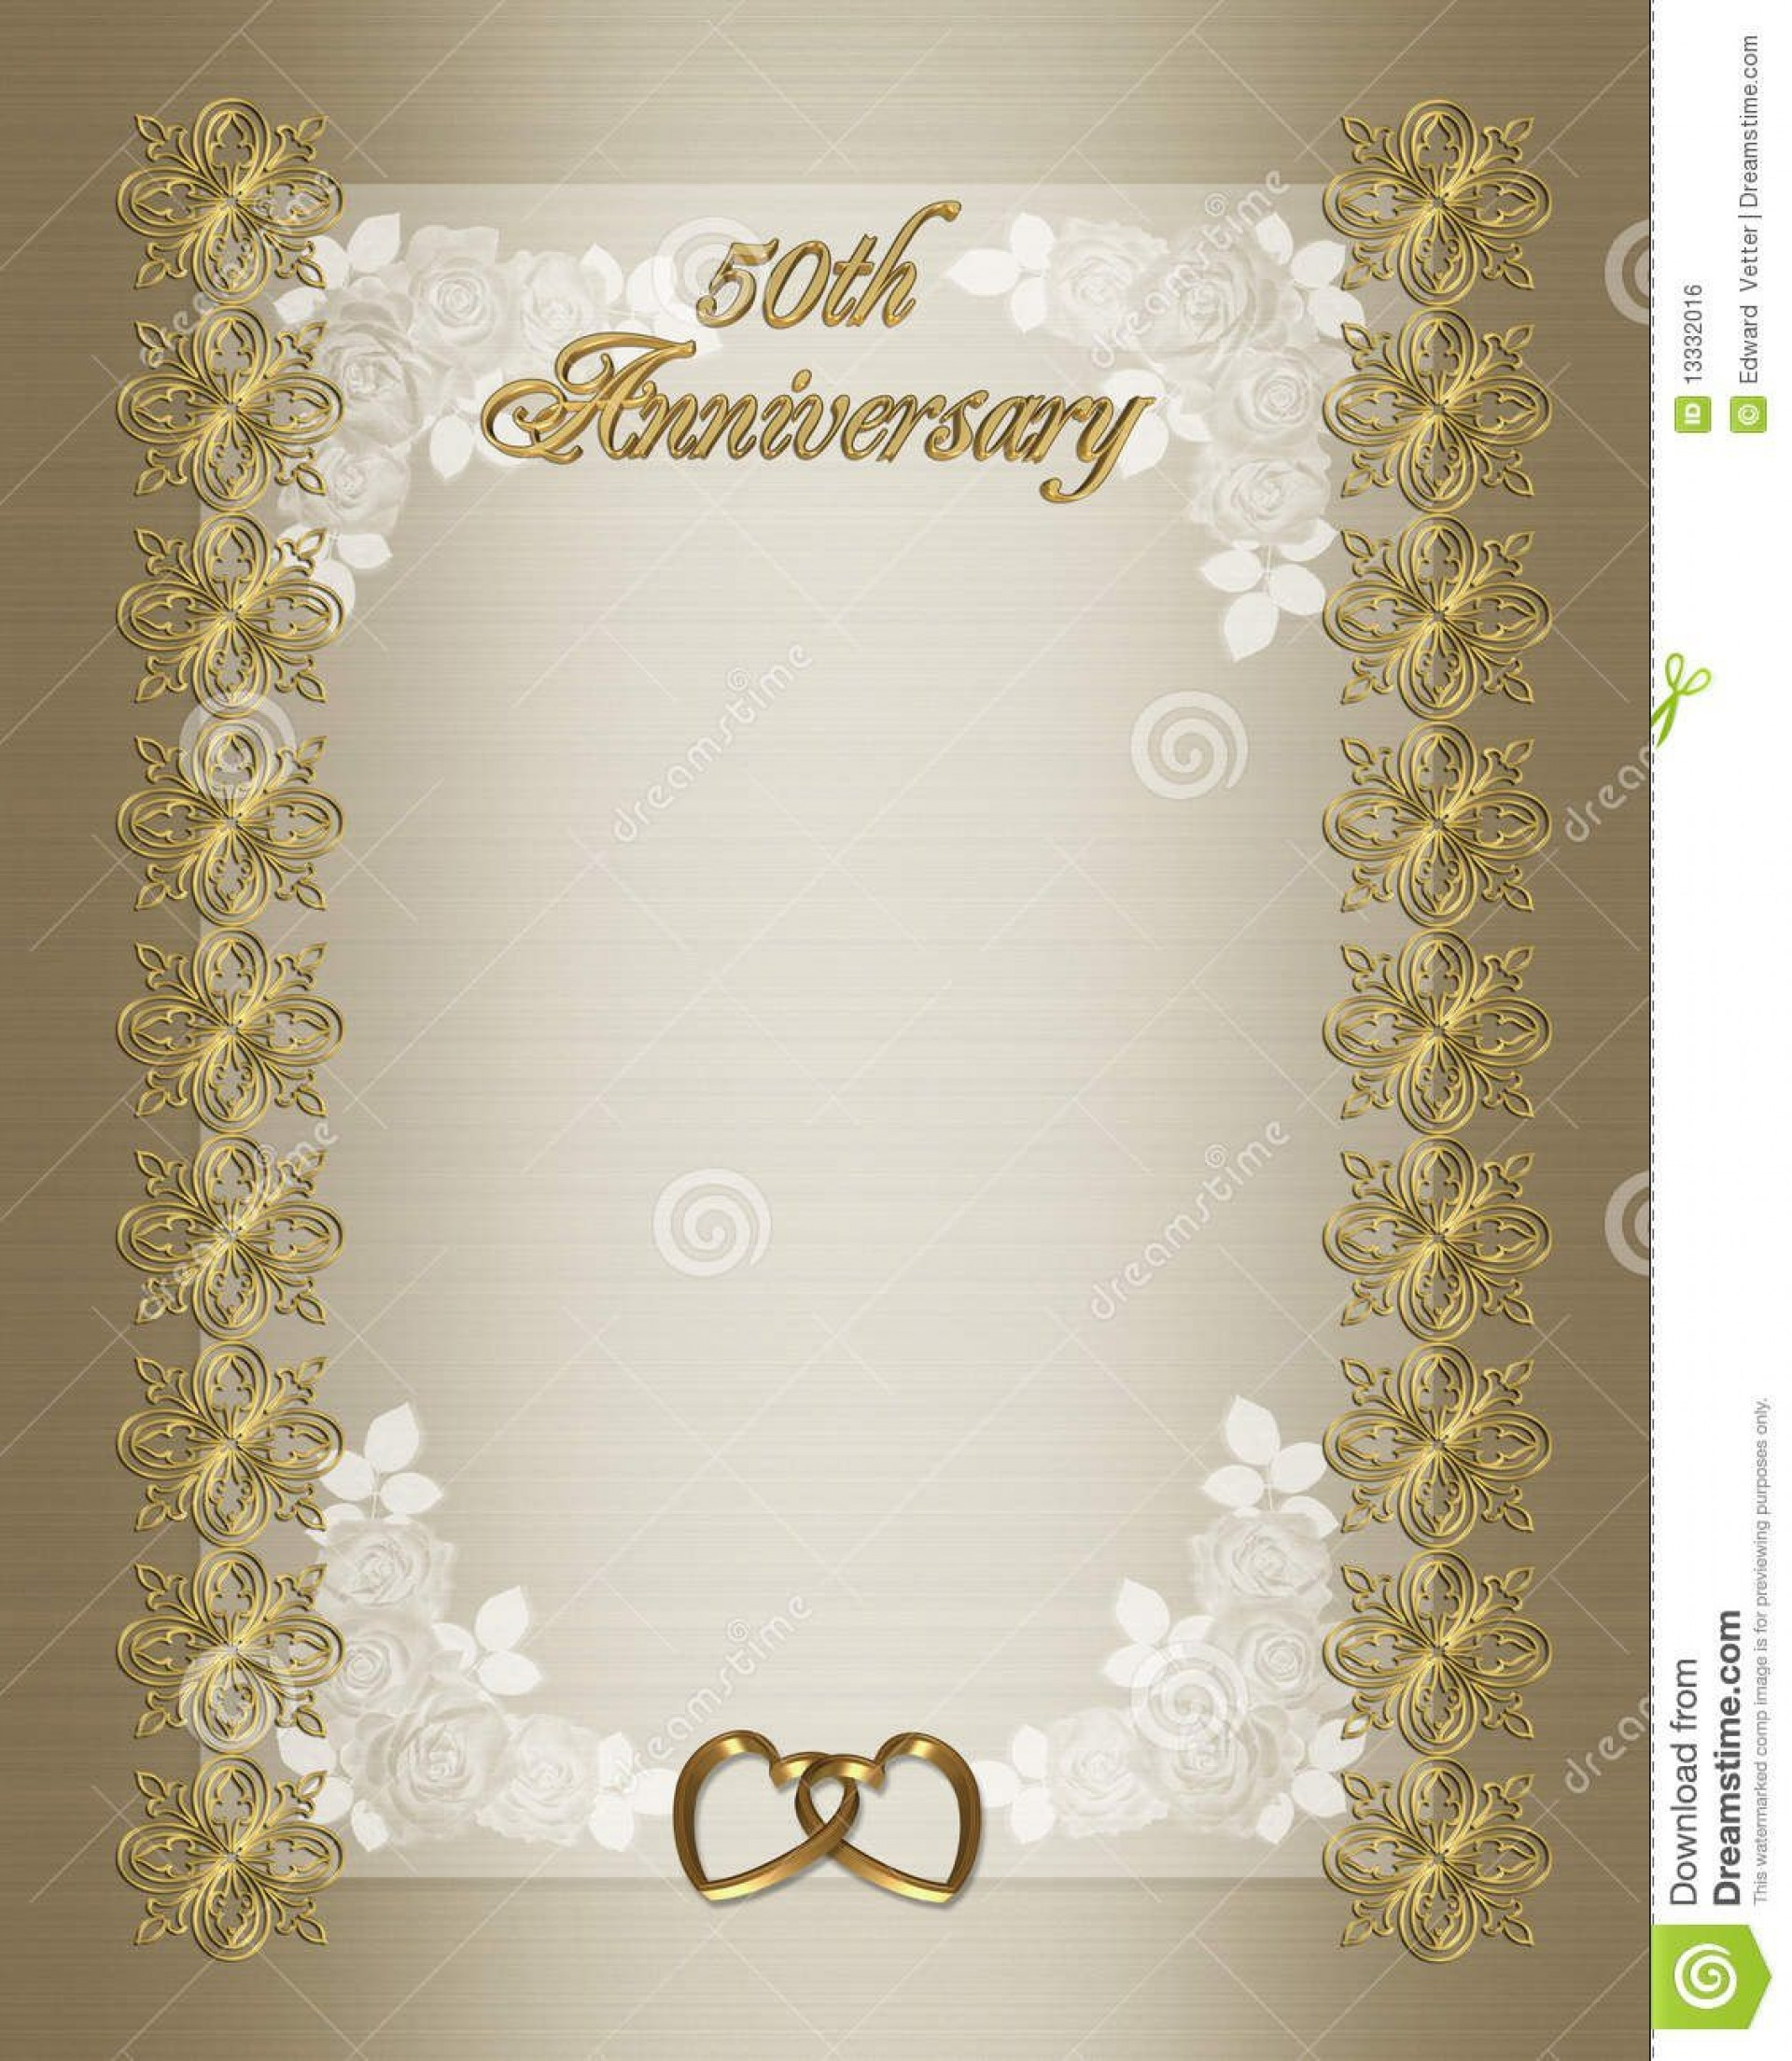 004 Awful 50th Wedding Anniversary Invitation Template Design  Templates Card Sample Golden1920